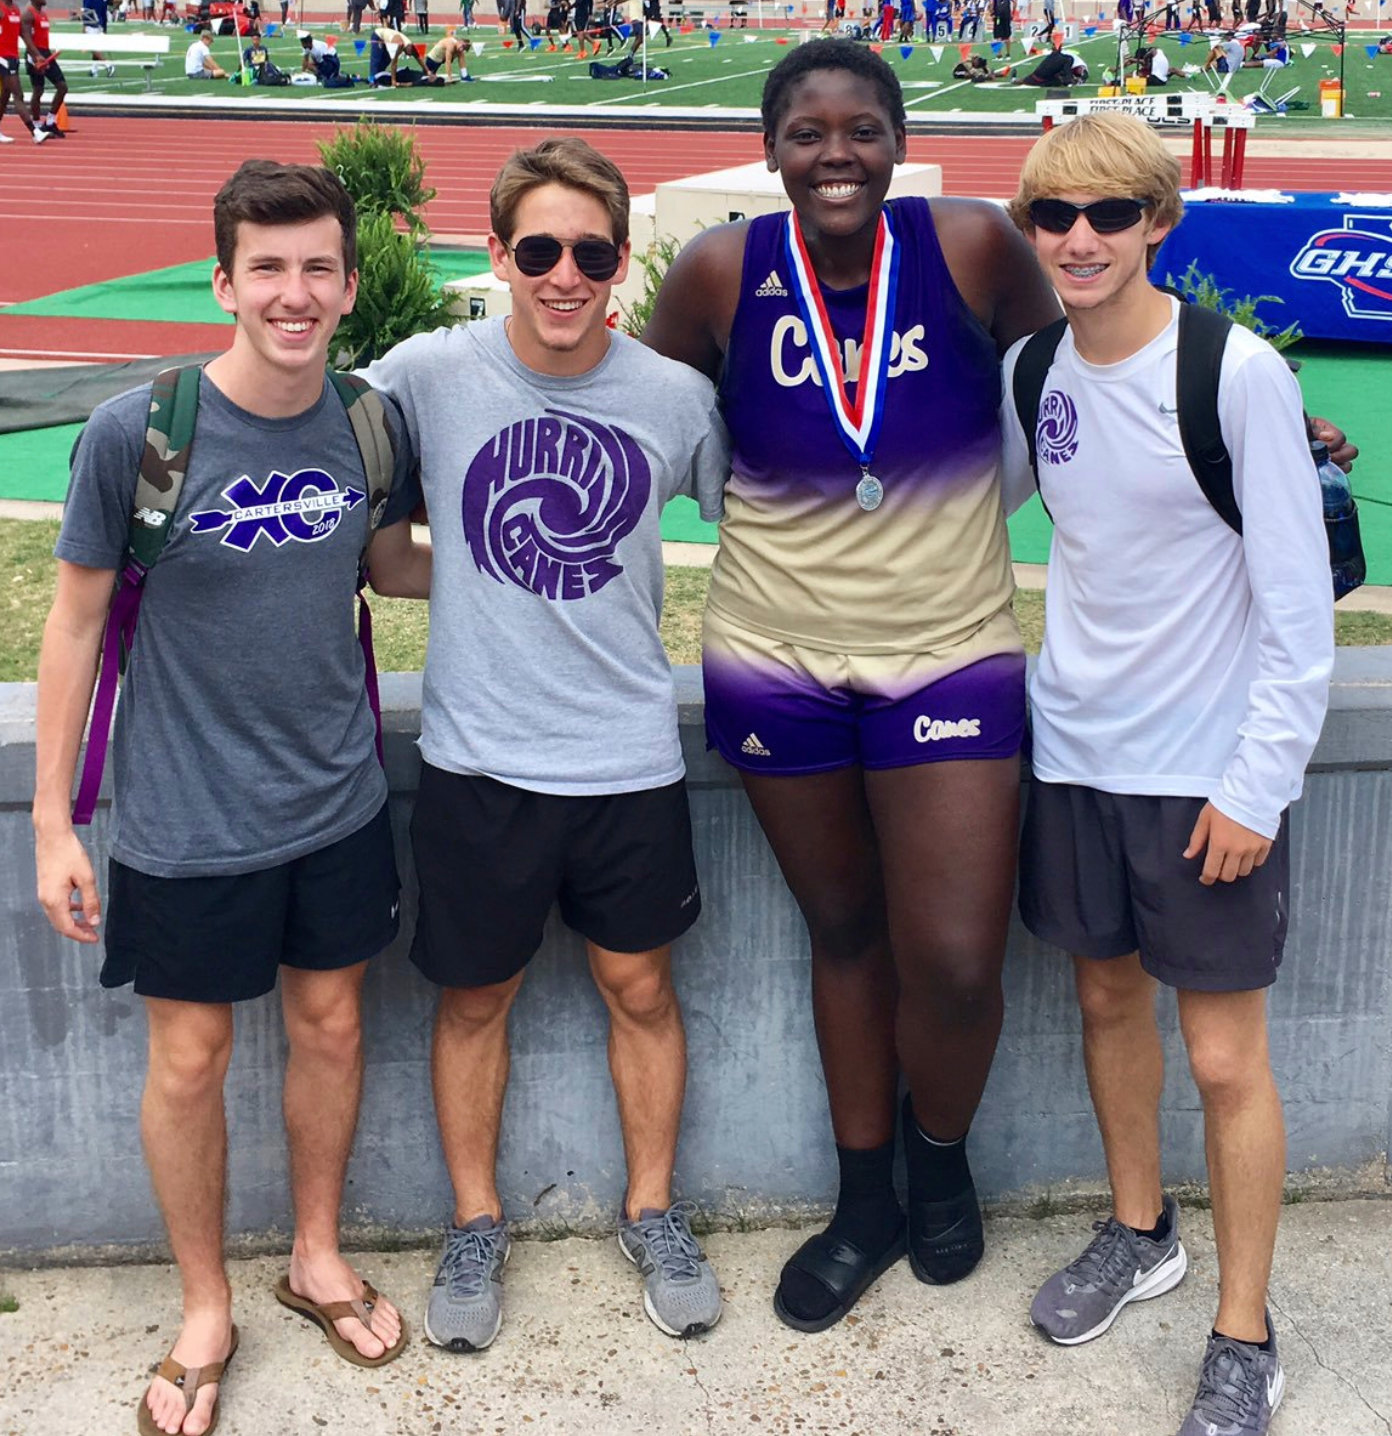 Cartersville High senior London Shaw, second from right, poses with the school's other state-qualifiers, from left, Parker Breedlove (3200-meter run), Nick Bebko (pole vault) and Bill Archer (1600-meter run) after finishing second in the Class 4A shot put at the track and field state championships in Albany.